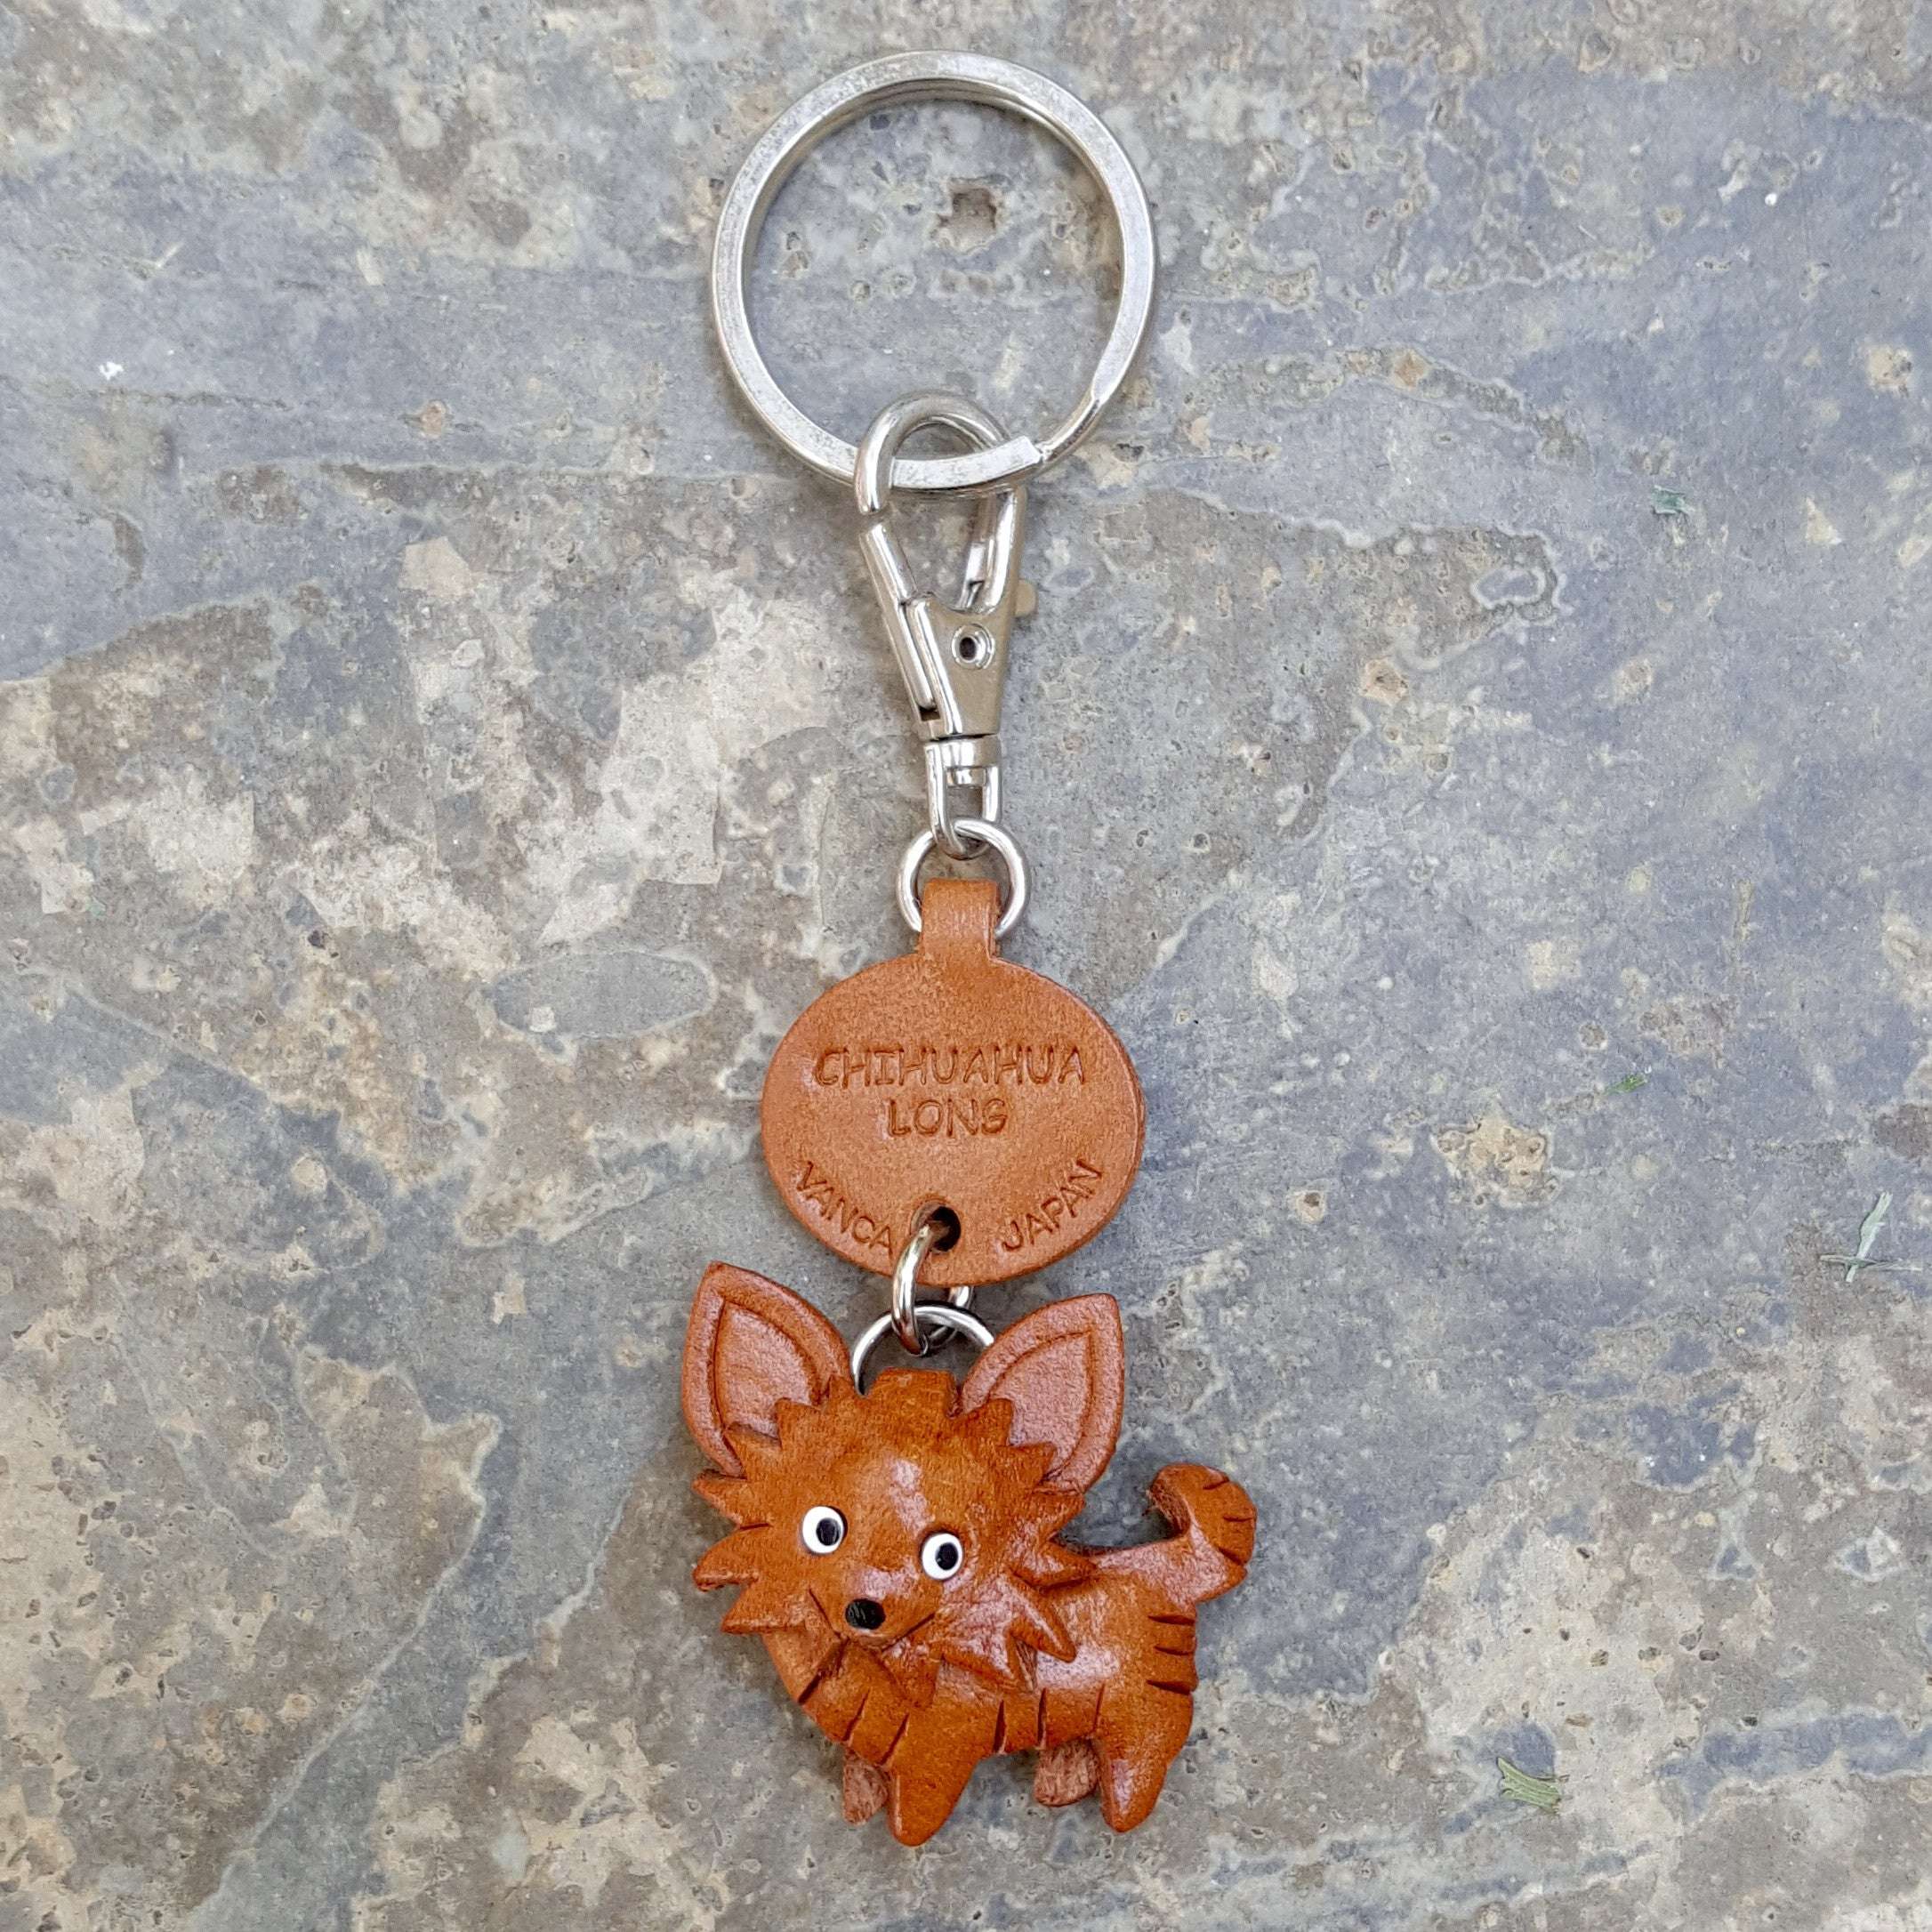 MINIATURE PINSCHER BT KEYCHAIN